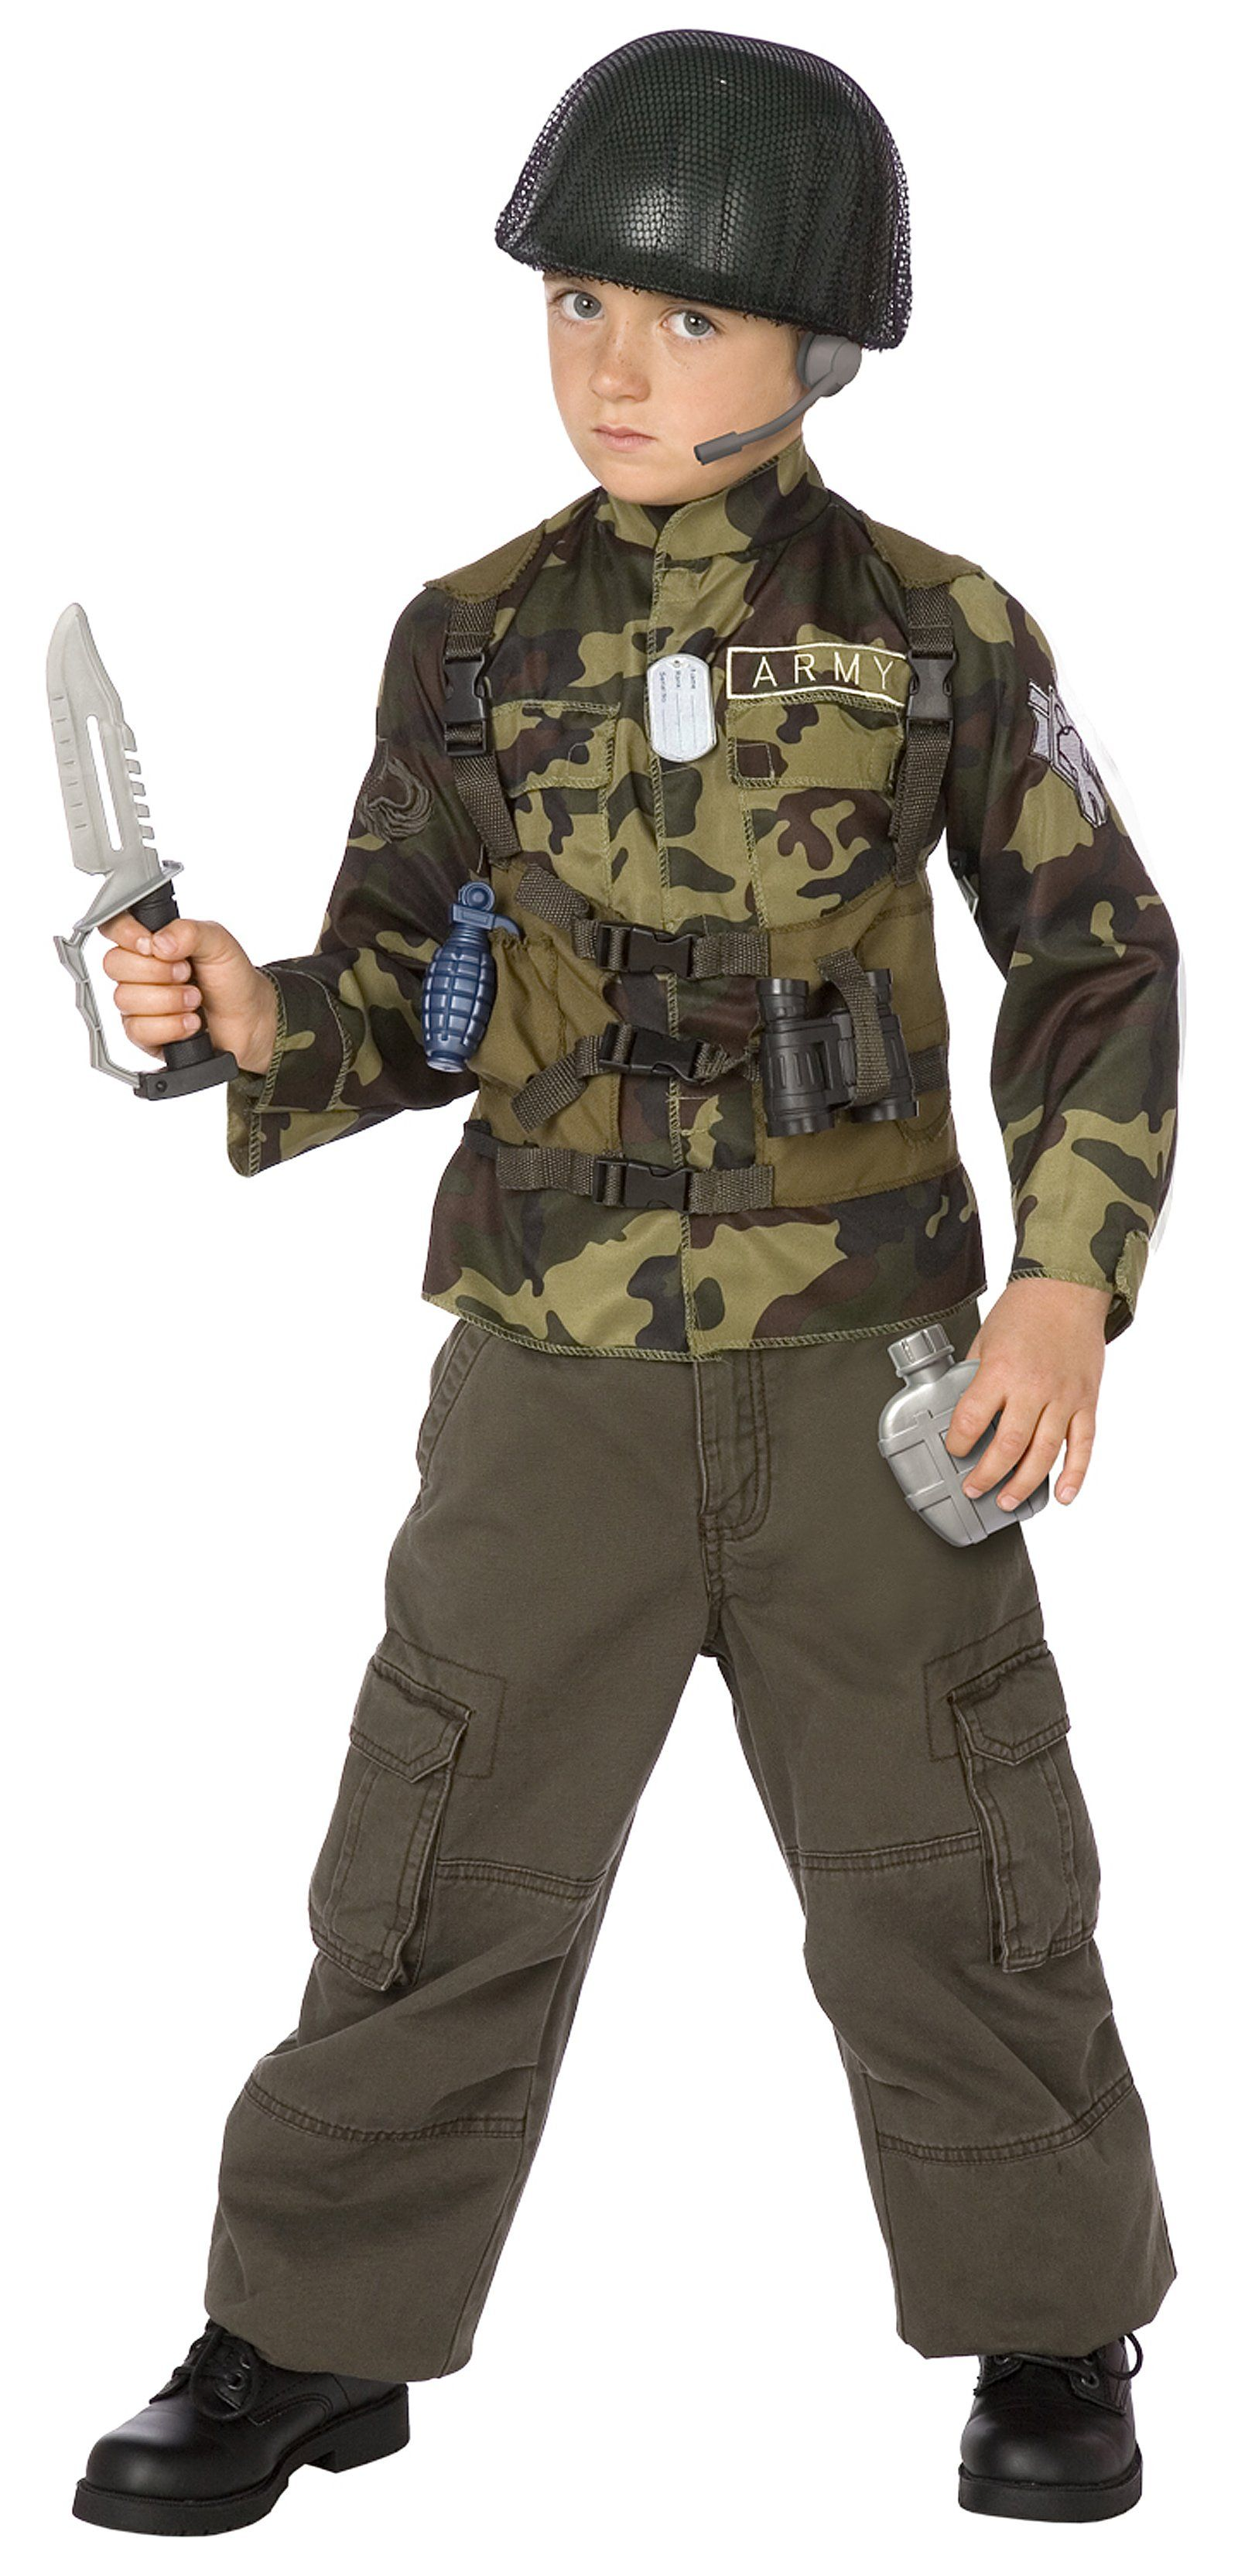 Army Ranger Child Costume Kit | Army ranger, Children costumes and ...